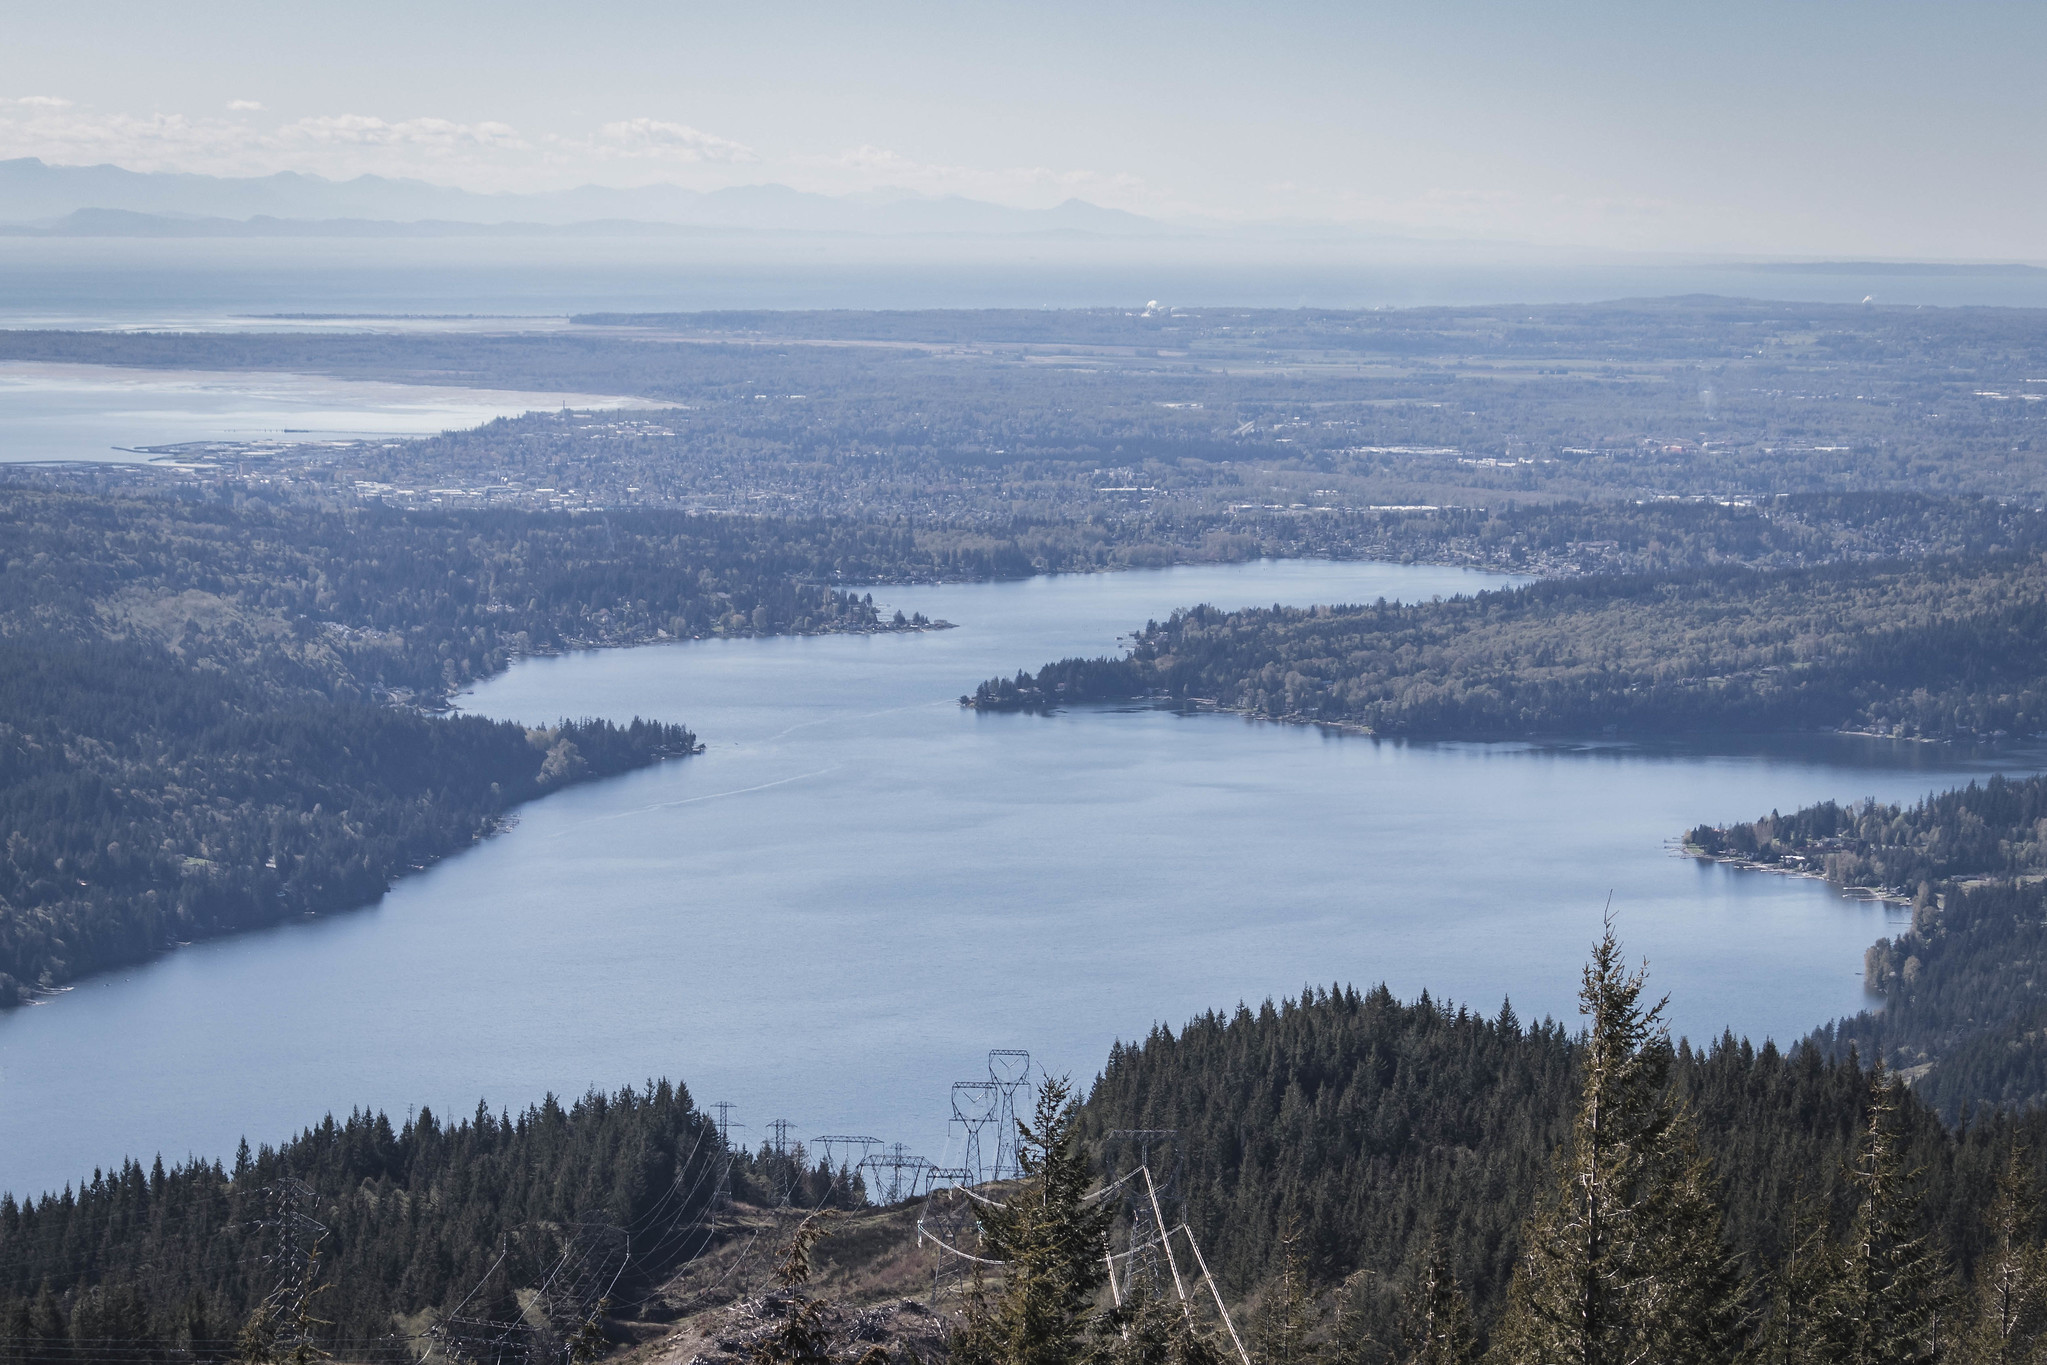 Lake Whatcom and Bellingham